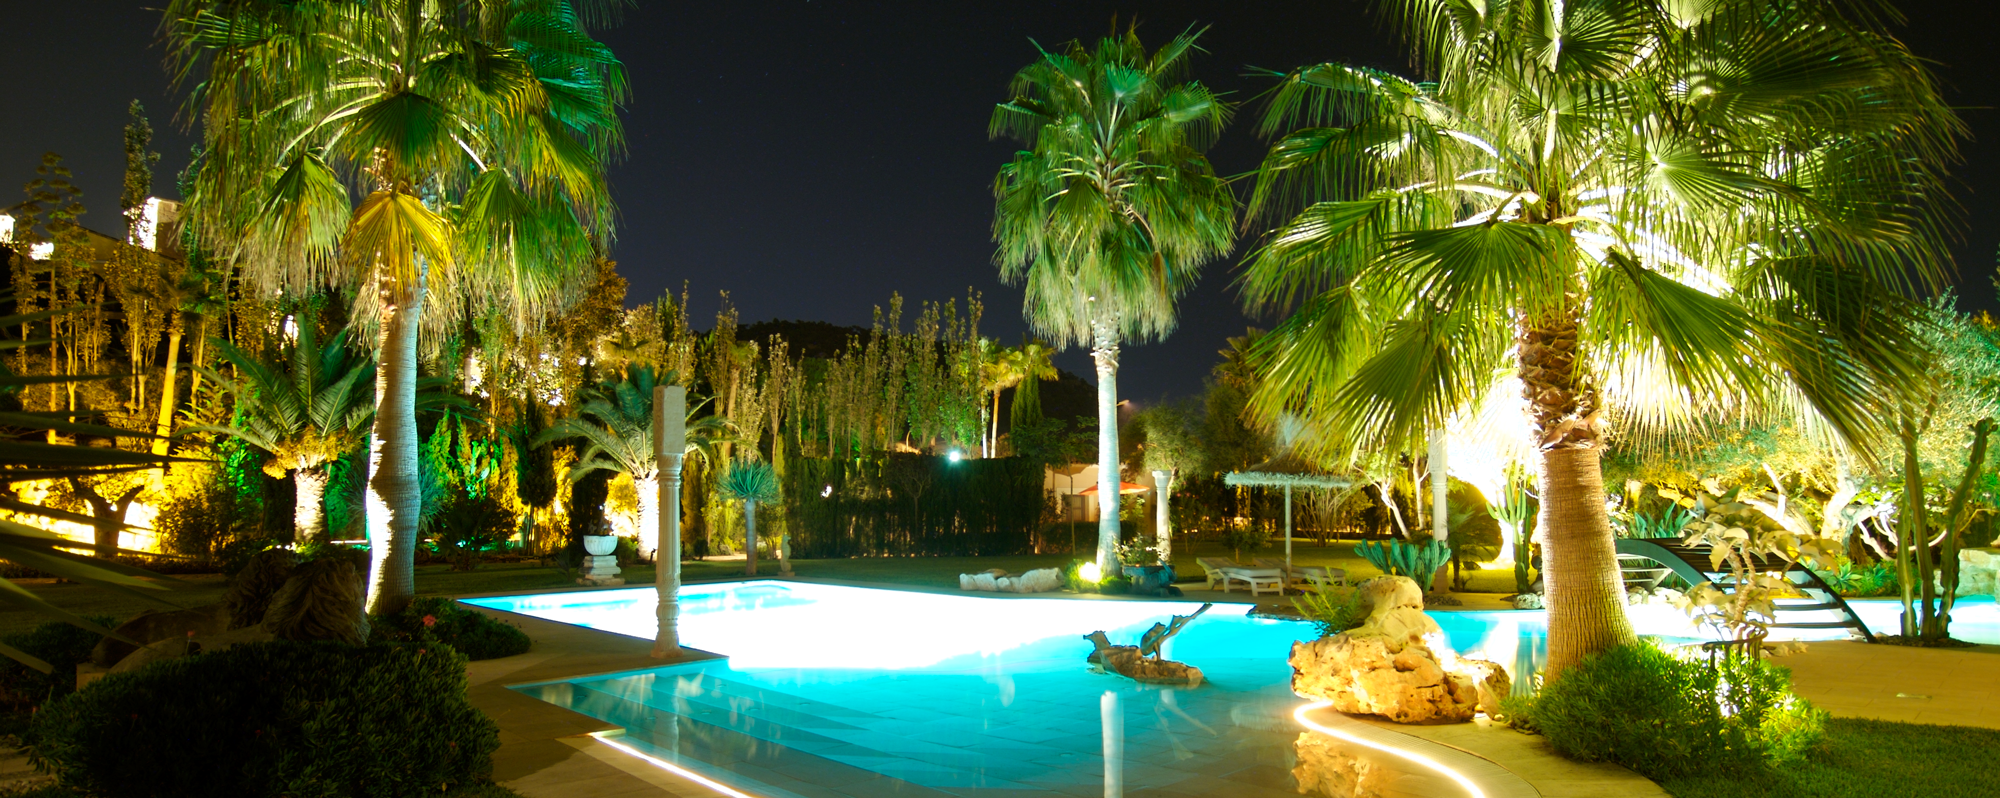 Packages Teo's Property Care Mallorca